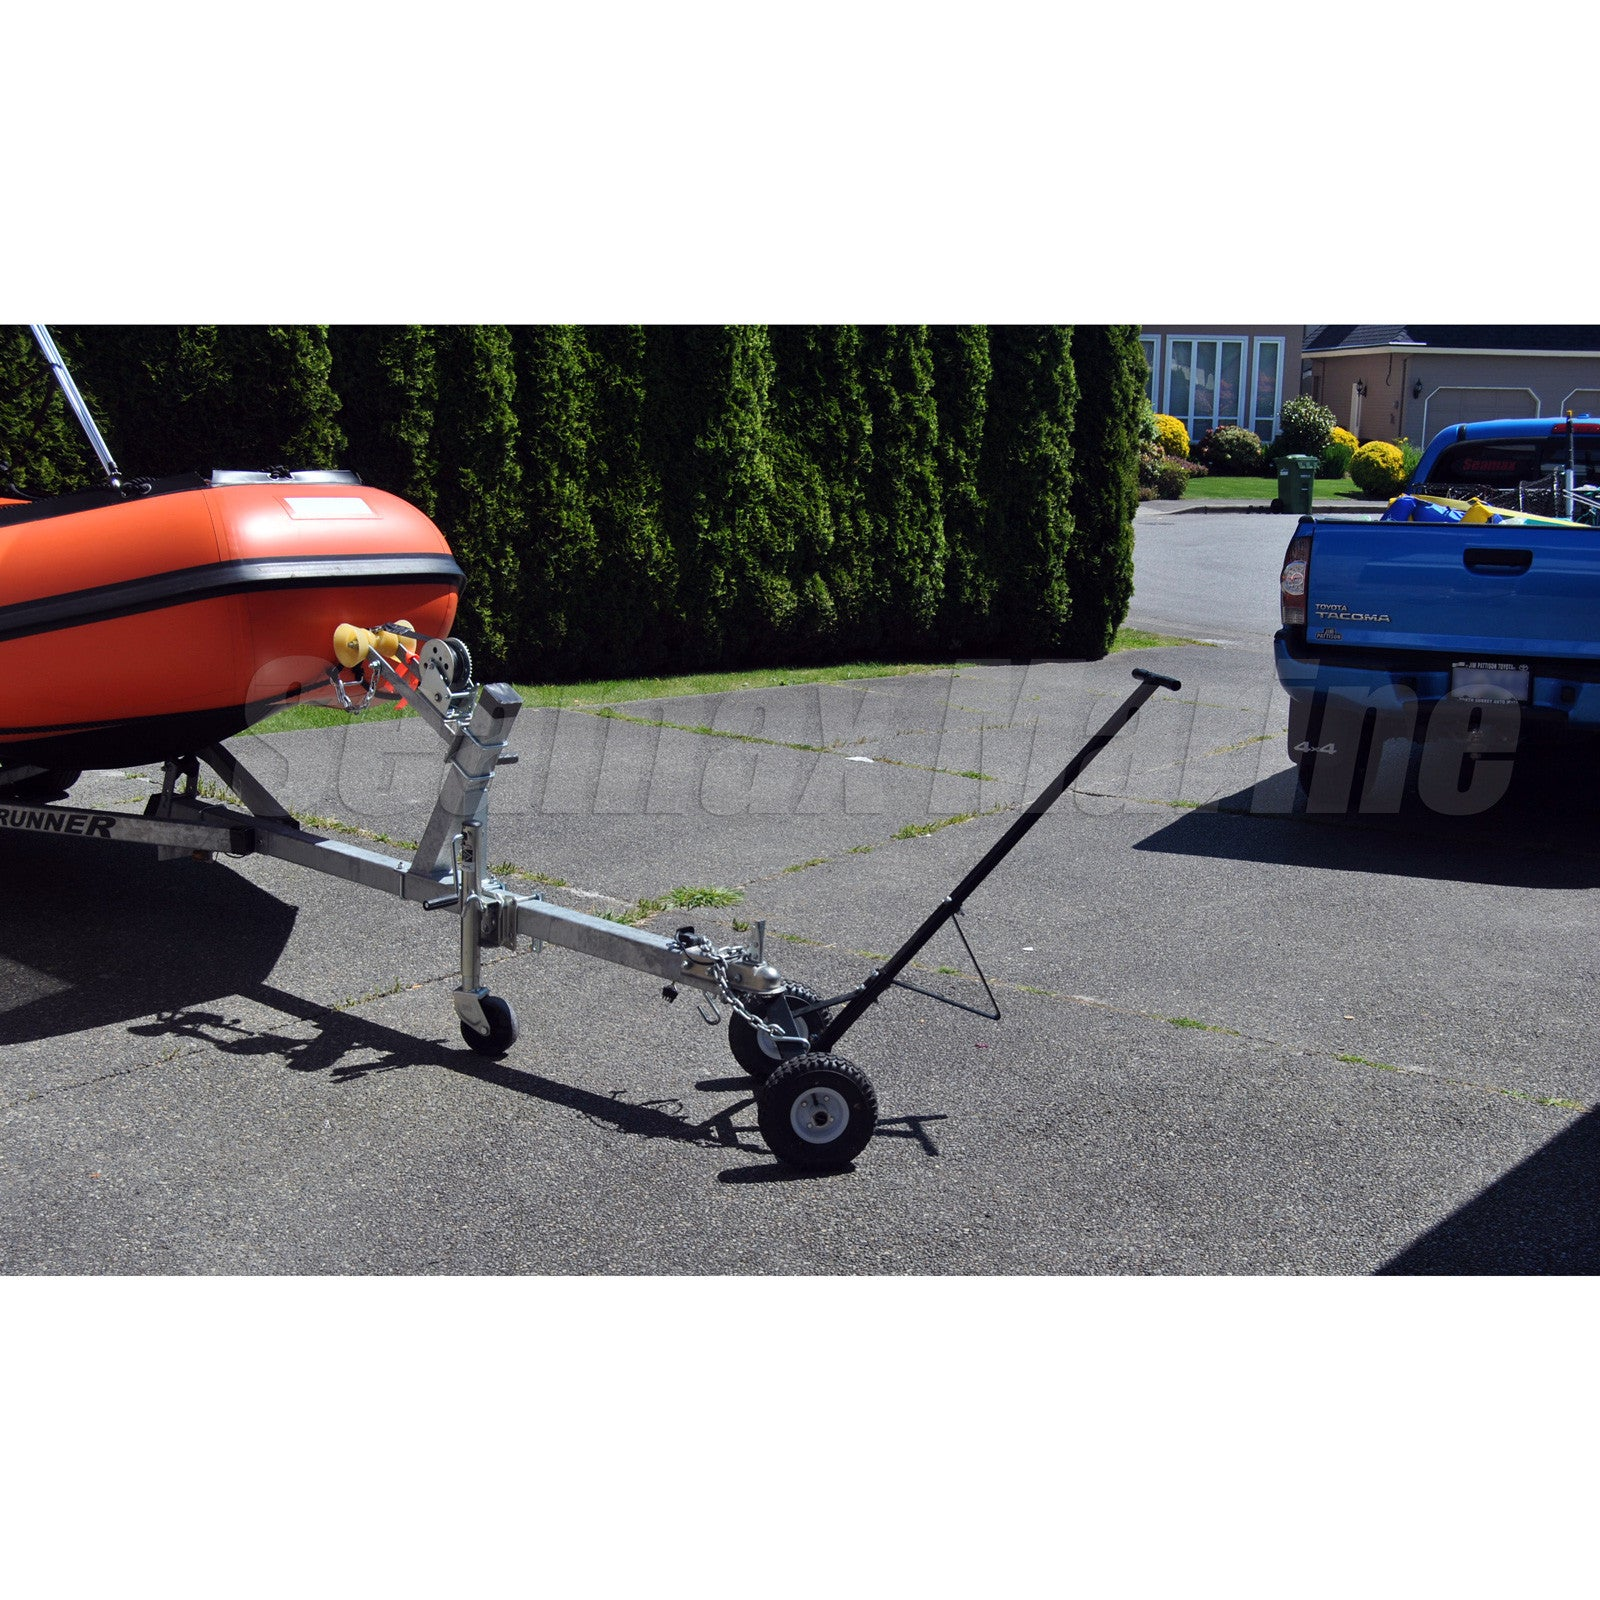 Seamax Trailer Dolly for Easy Moving, Max Support 5000Lbs Weight ...